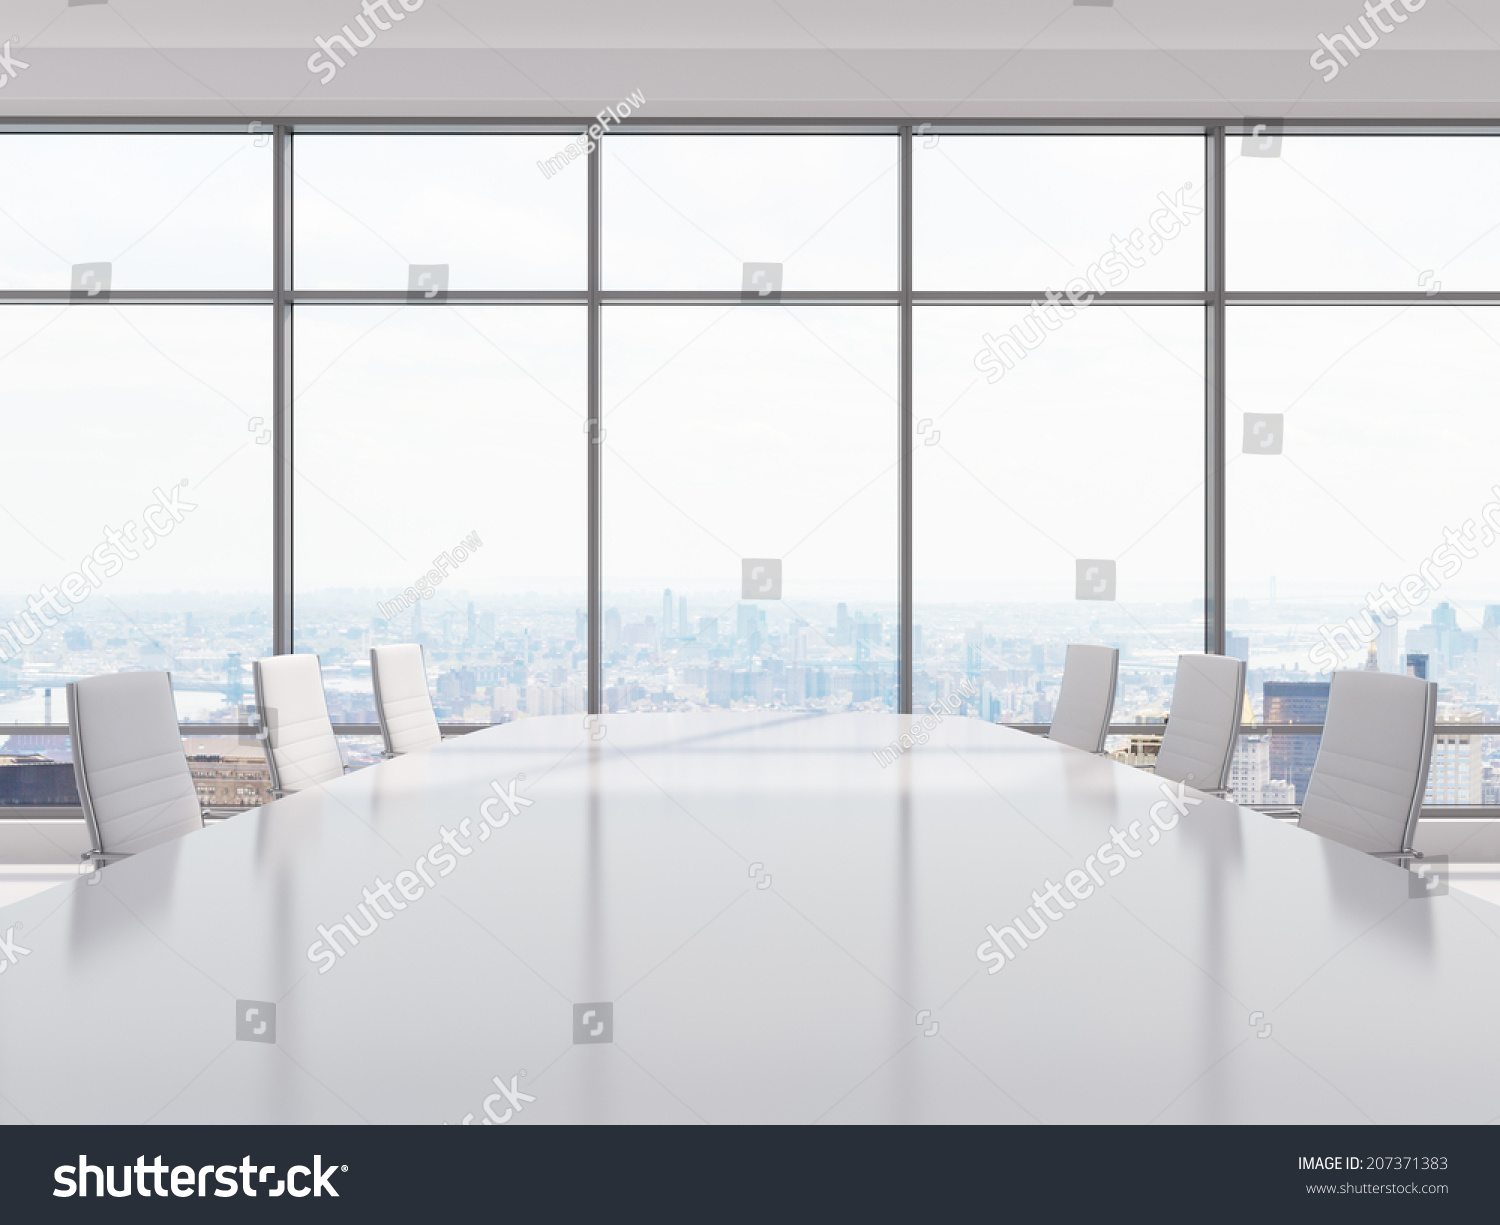 Conference Room Modern Office Windows City Stock Photo 207371383 ...